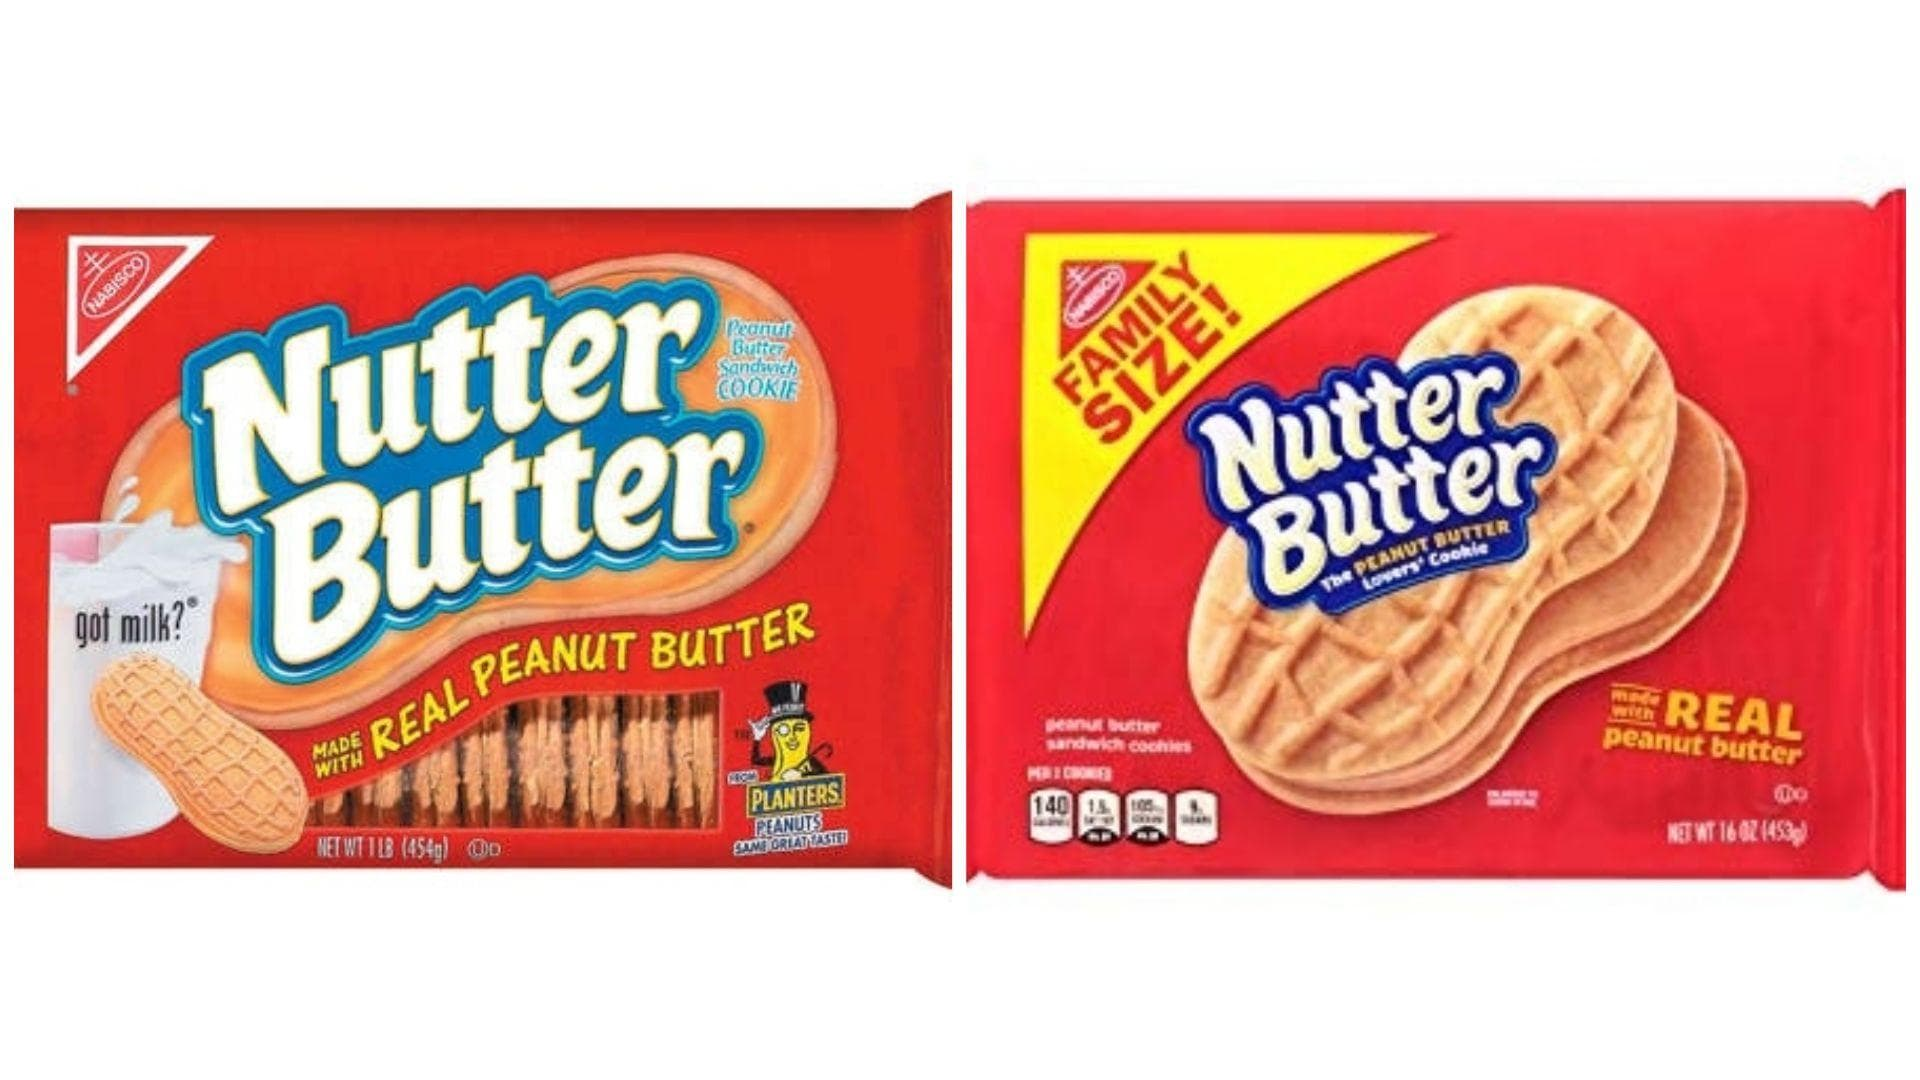 Nutter Butter, C. 1990s Vs. 2019 on Random Changed Over Time of Cookie Boxes